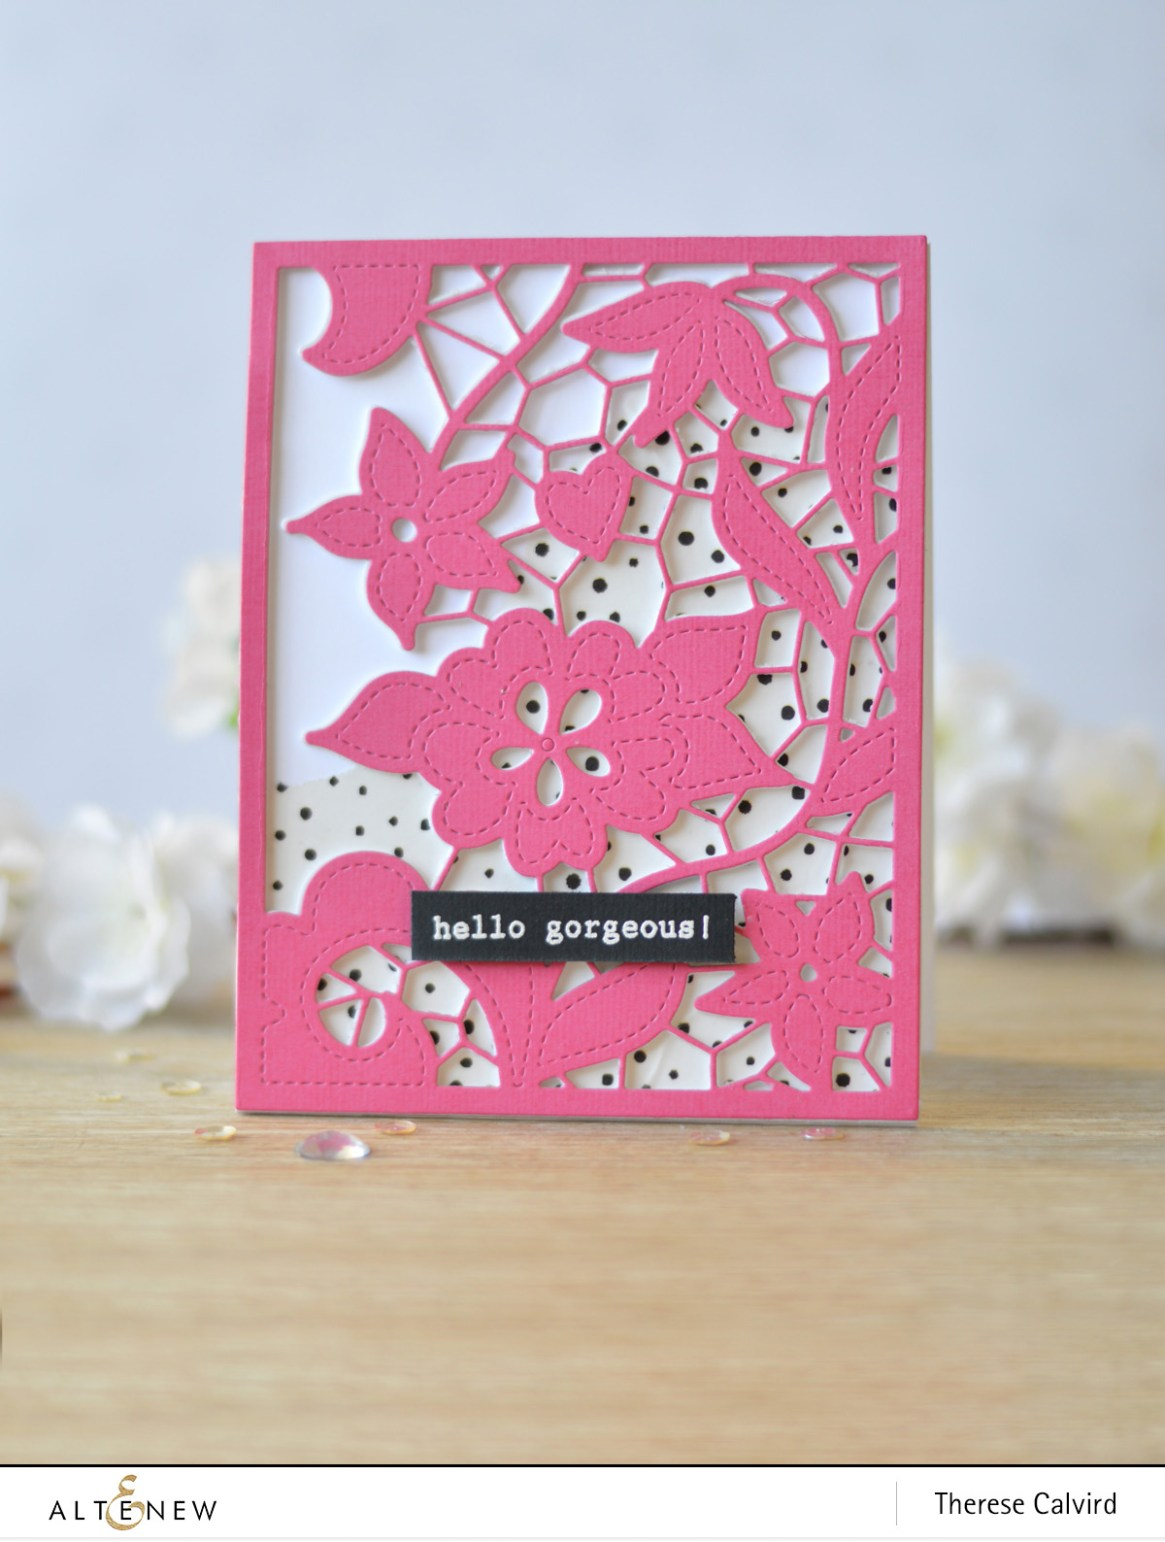 Altenew - Doodled Lace - Layered Floral - Dotted Washi Tape - Therese Calvird (card video) 3 copy